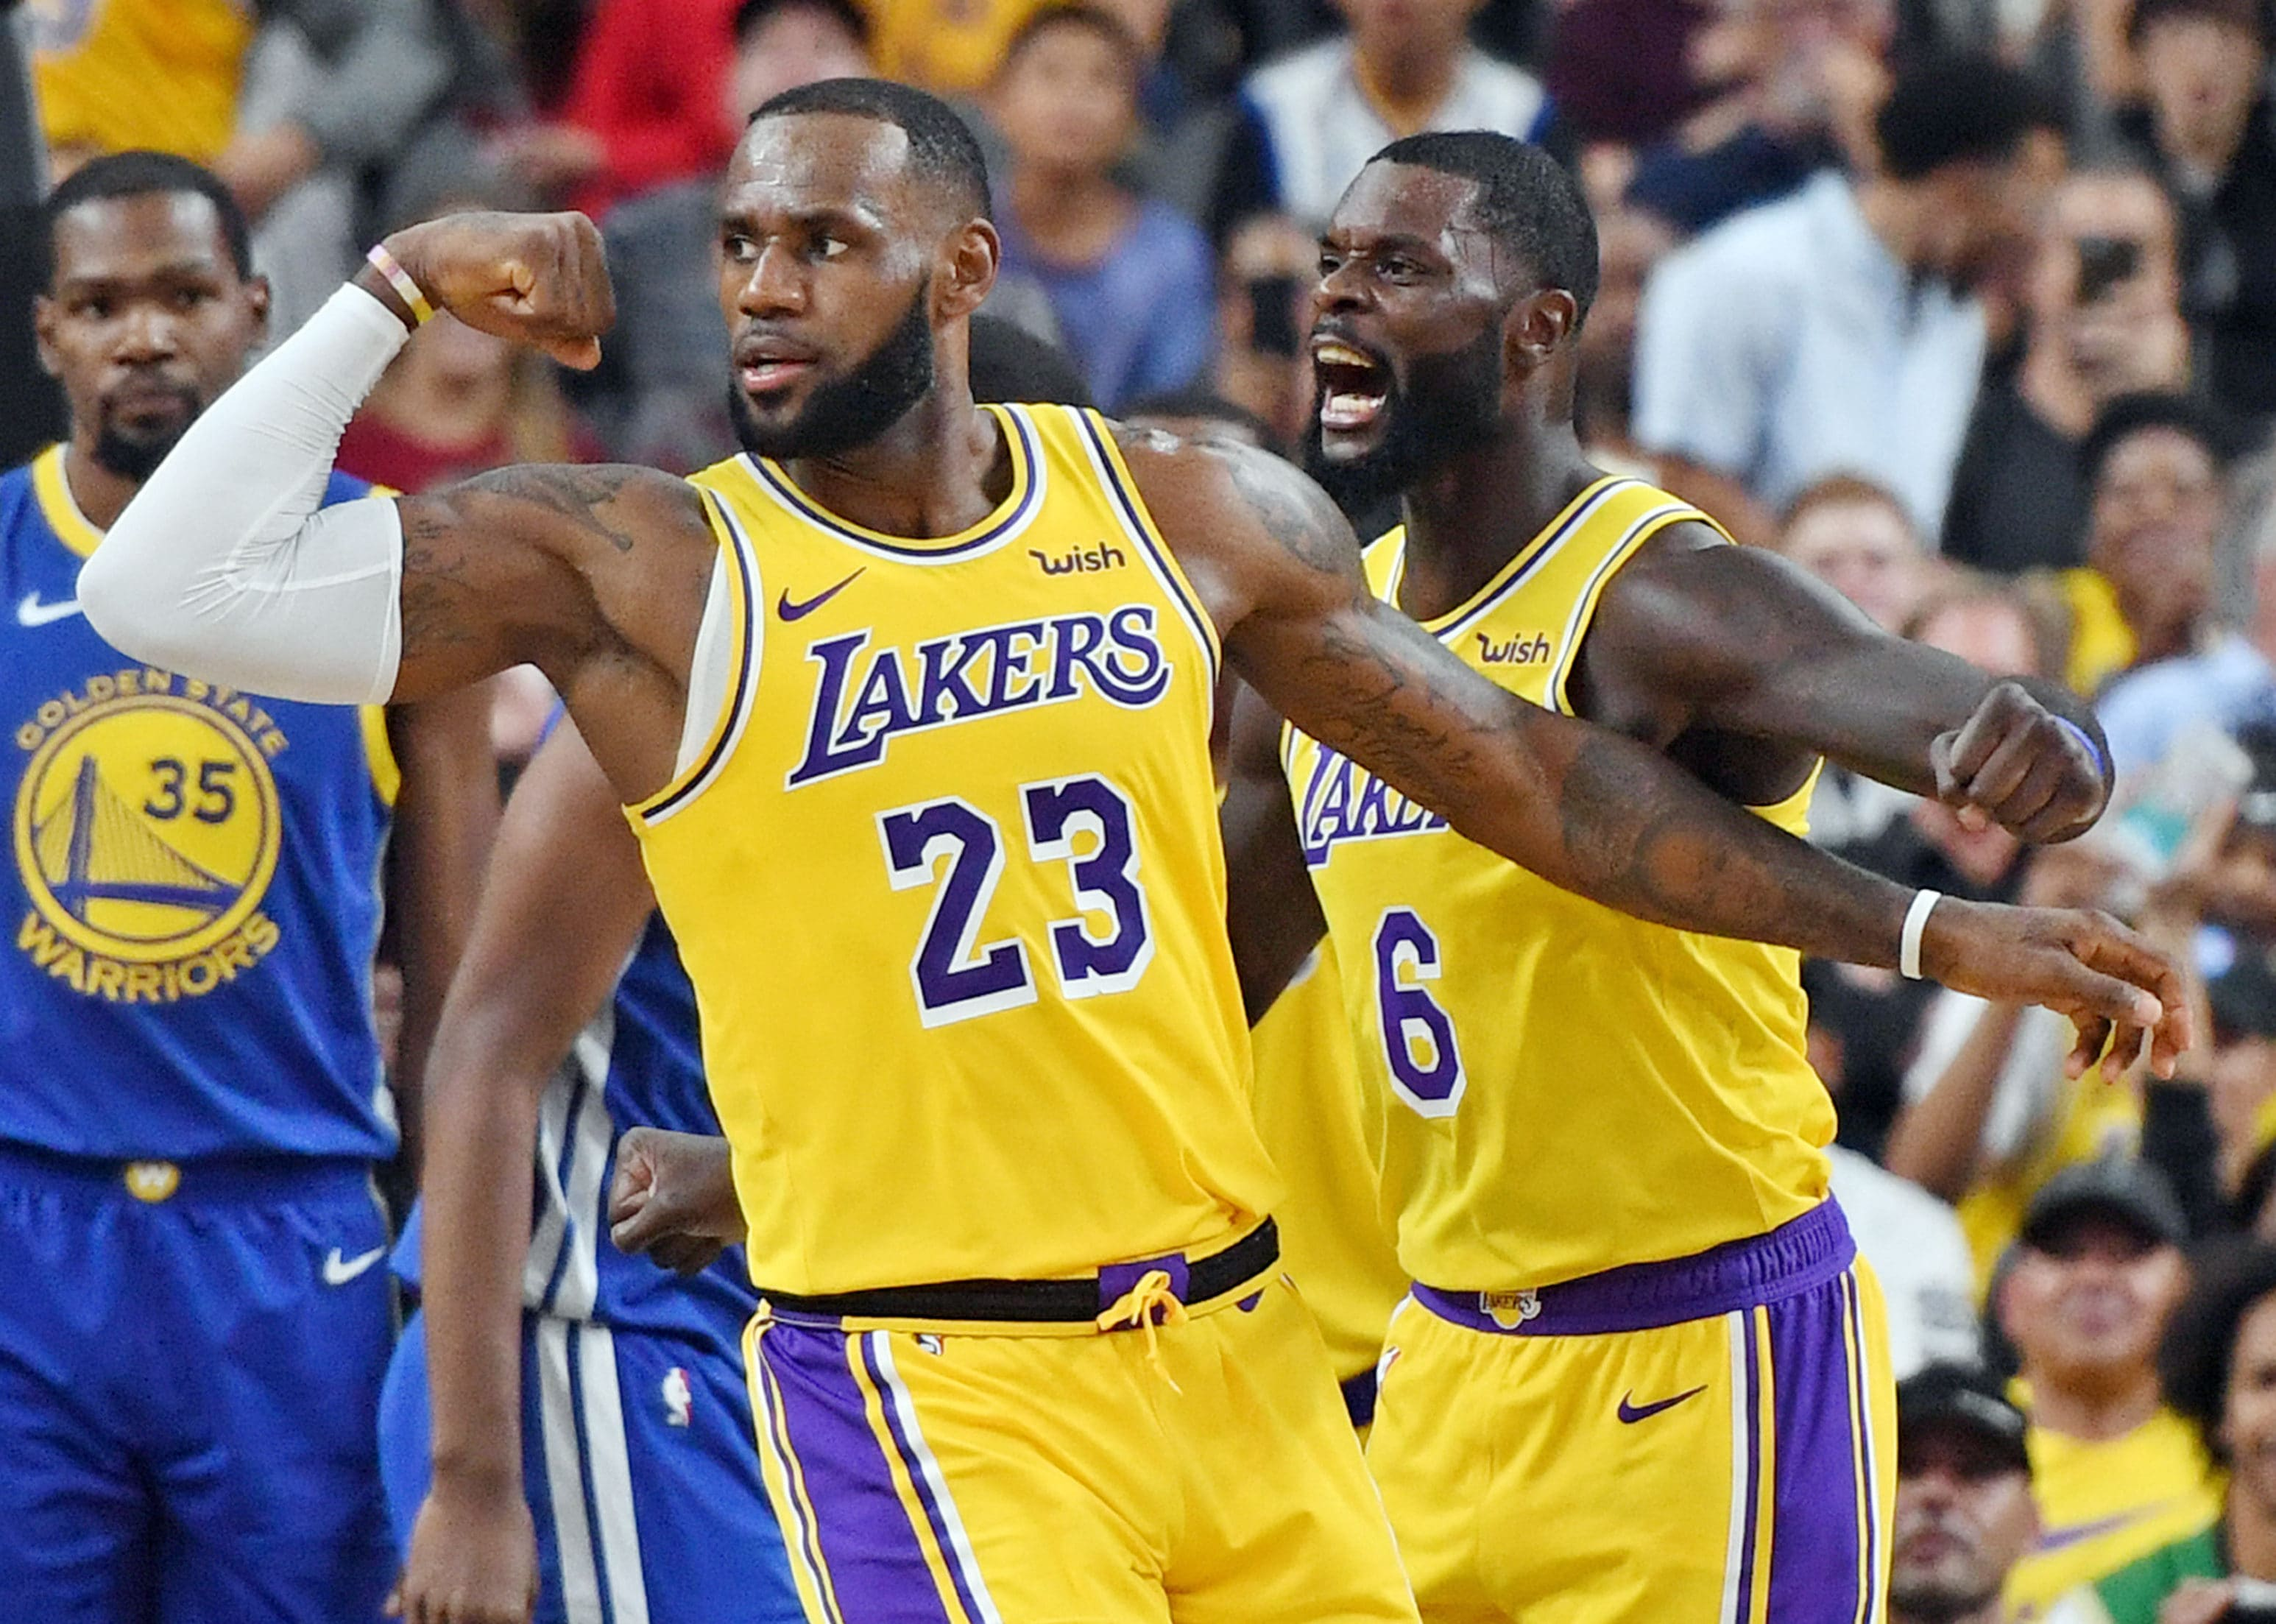 fc3fe31c817 LeBron James  23 and Lance Stephenson  6 of the Los Angeles Lakers  celebrate after James made a shot against the Golden State Warriors.